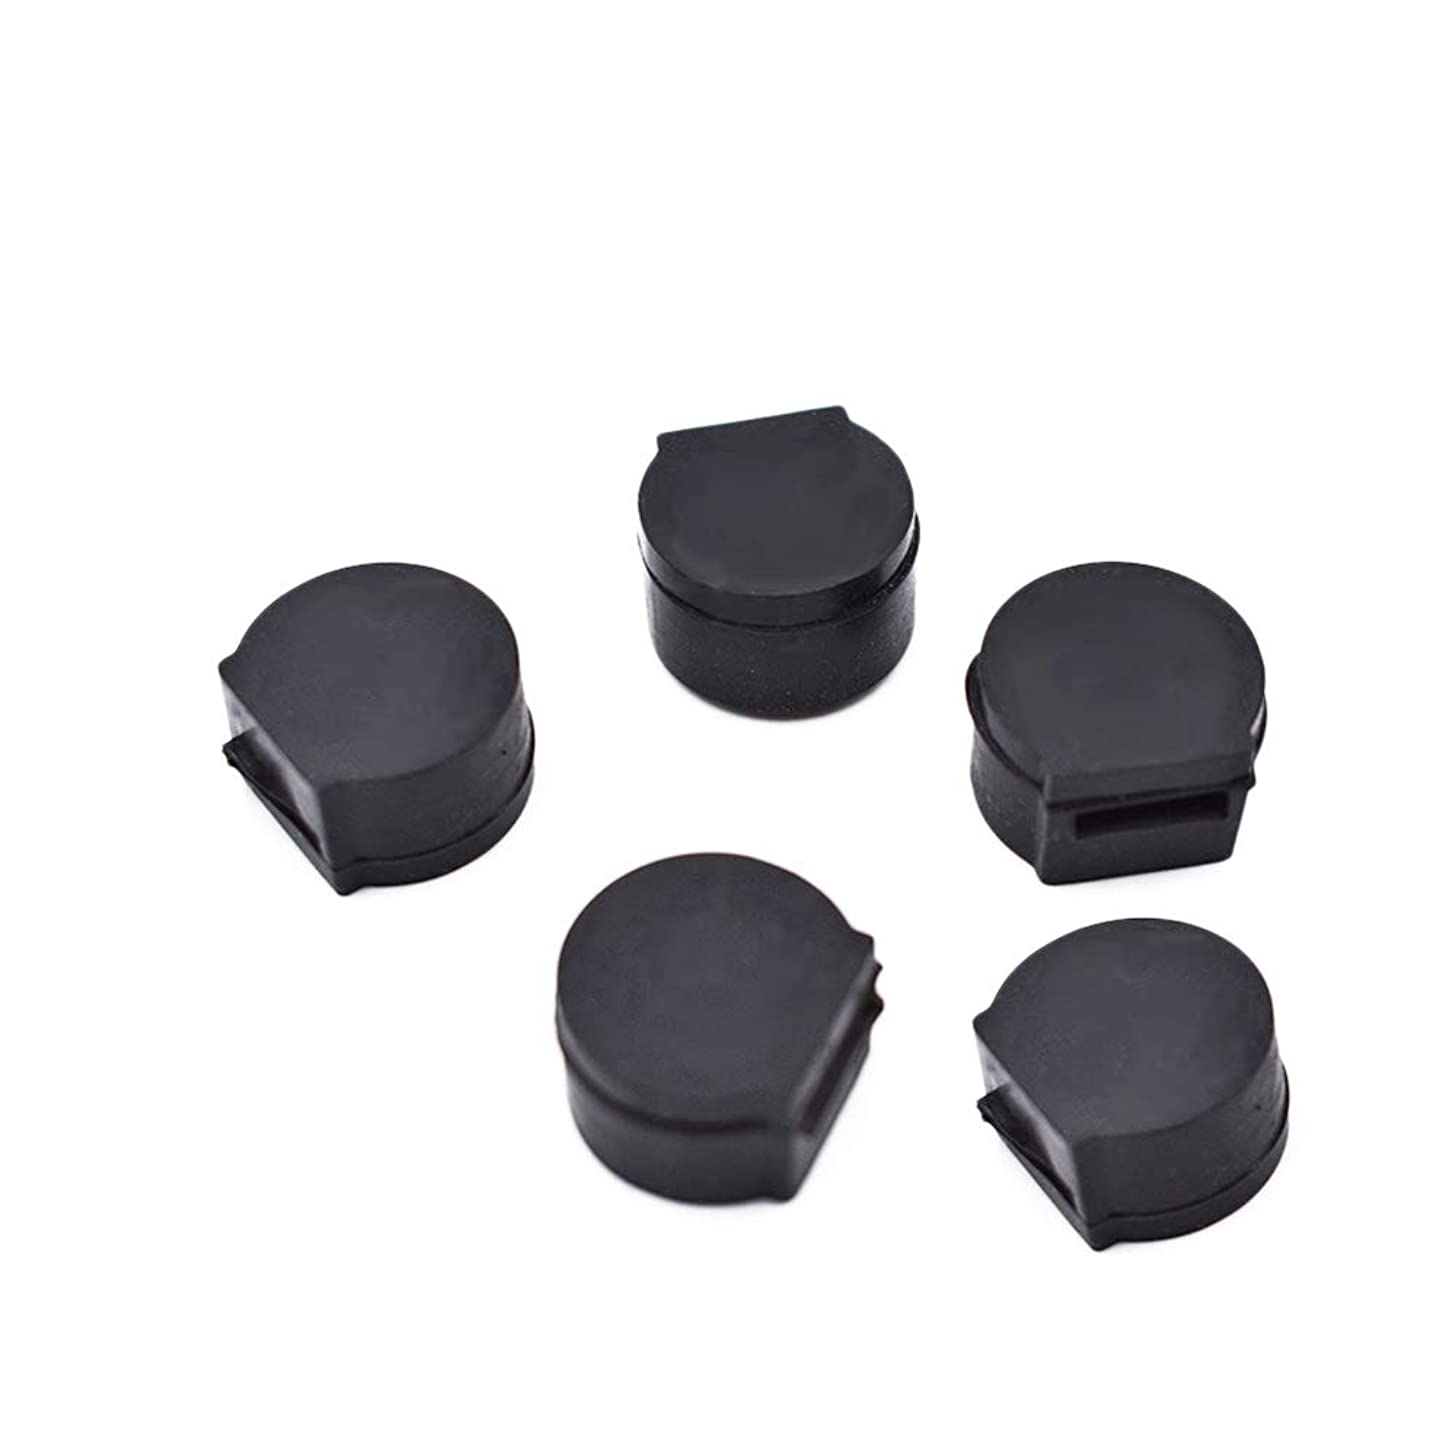 Tcplyn Thumb Rest Cushion Rubber Clarinet Woodwind Wind Instrument Practice Finger Protection Thumb Pad Black 5 Pieces